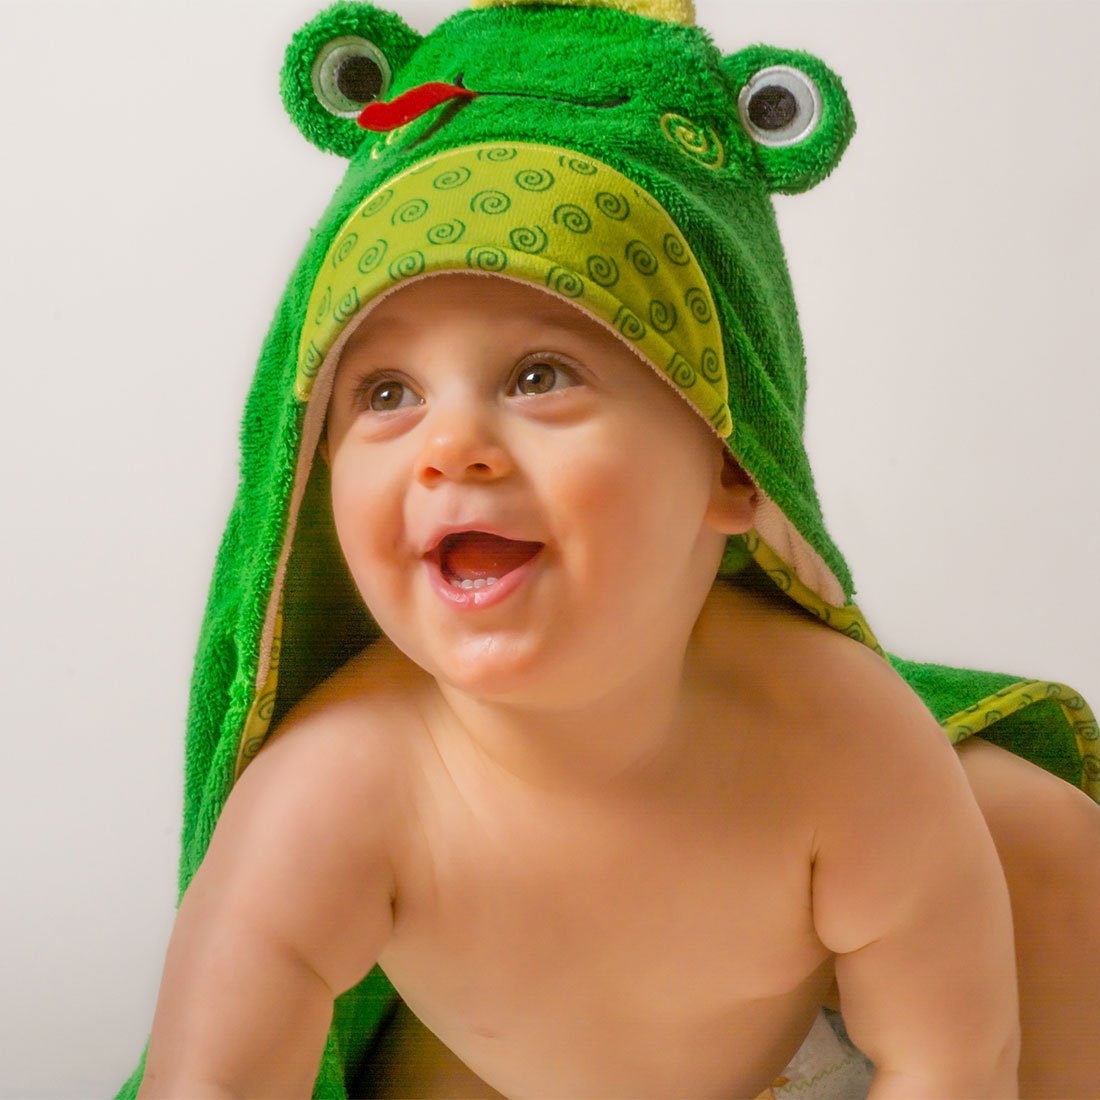 ZOOCCHINI Baby Snow Terry Hooded Bath Towel - Flippy the Frog